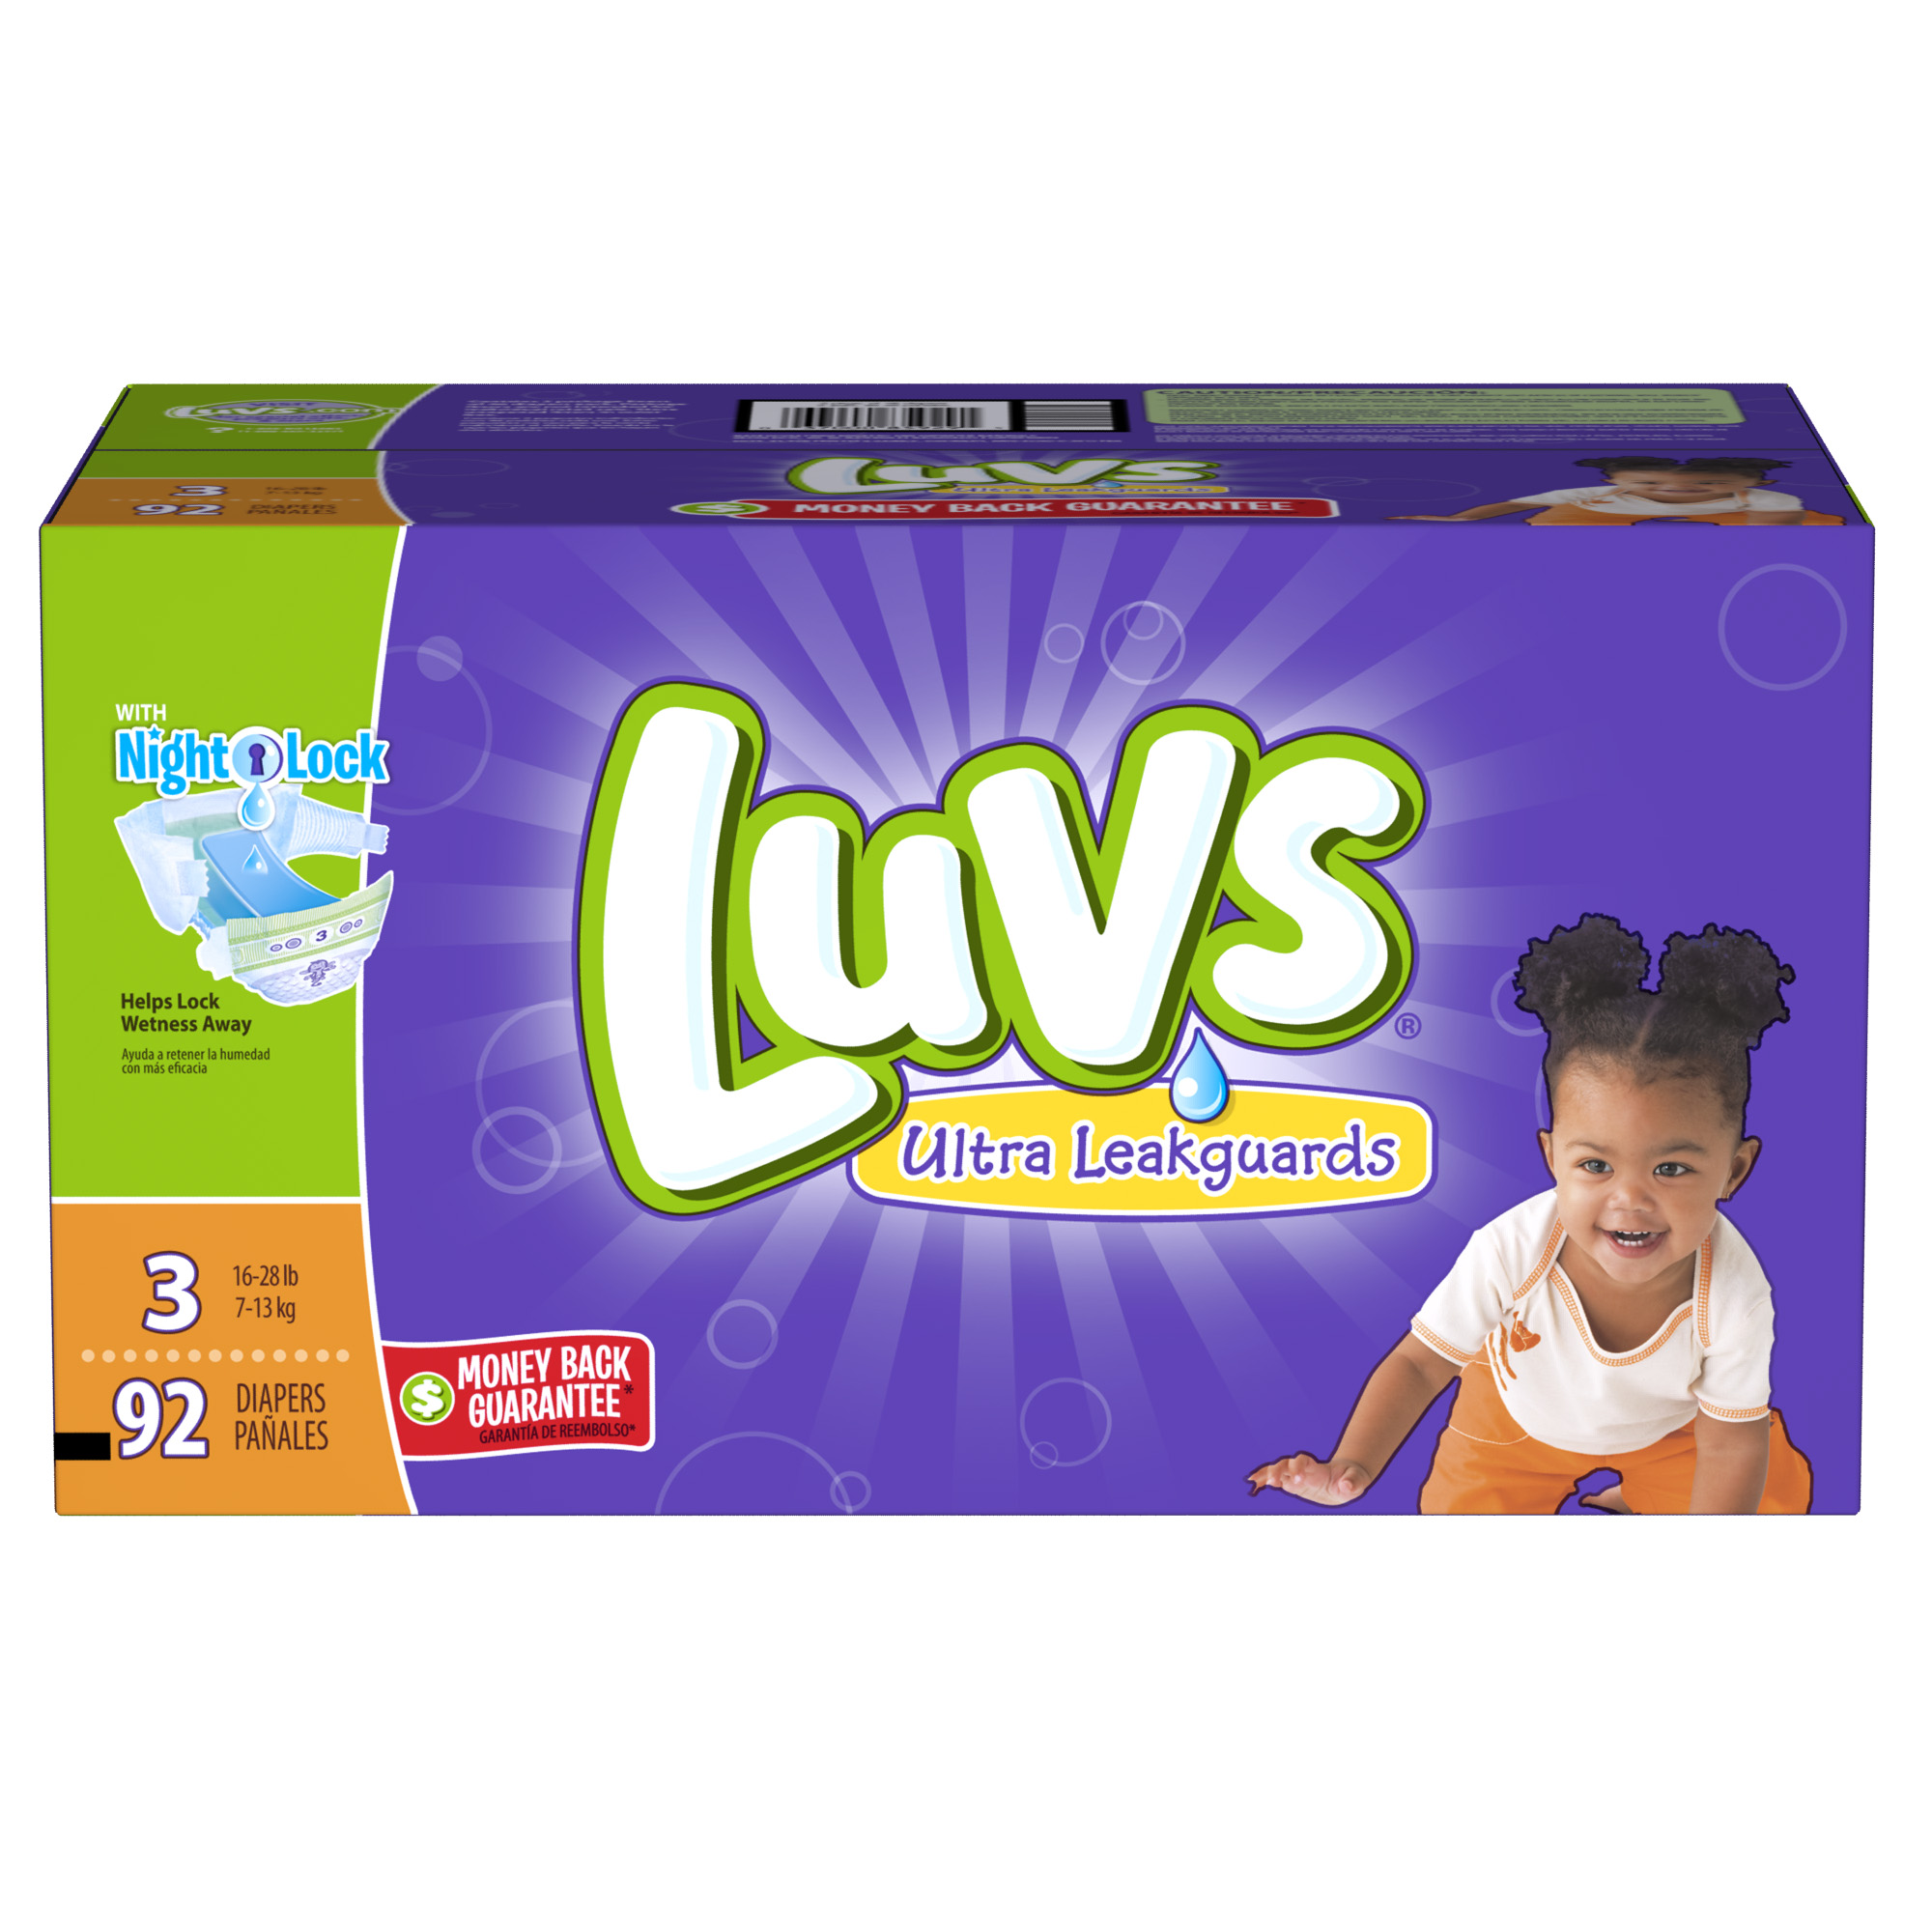 Luvs has diaper offers and diaper promotions to save you money. Get the best for your baby and the most for your money, visit counbobsbucop.tk now!